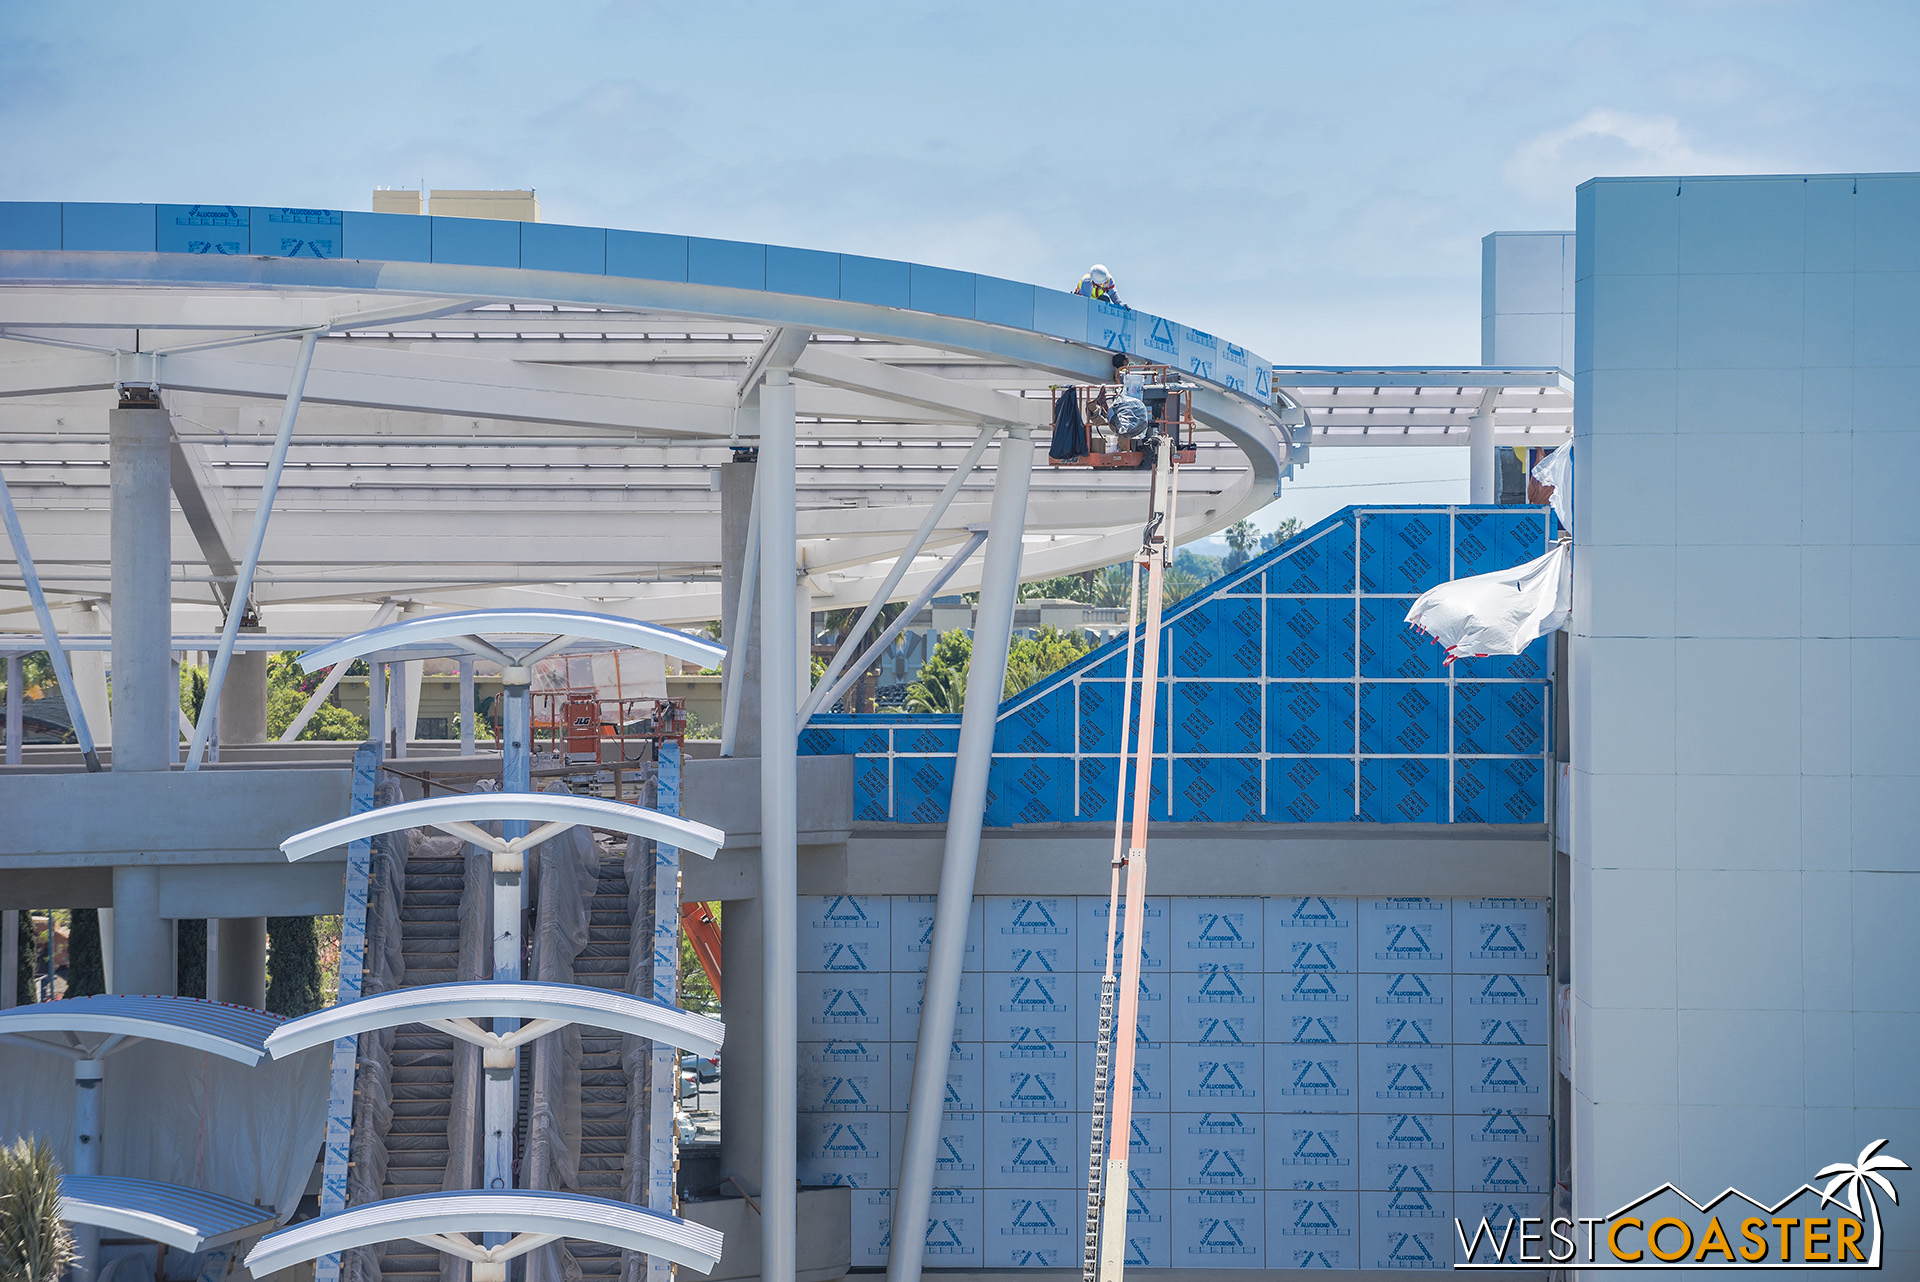 Workers continue to install the aluminum composite panel fascia at the canopy.